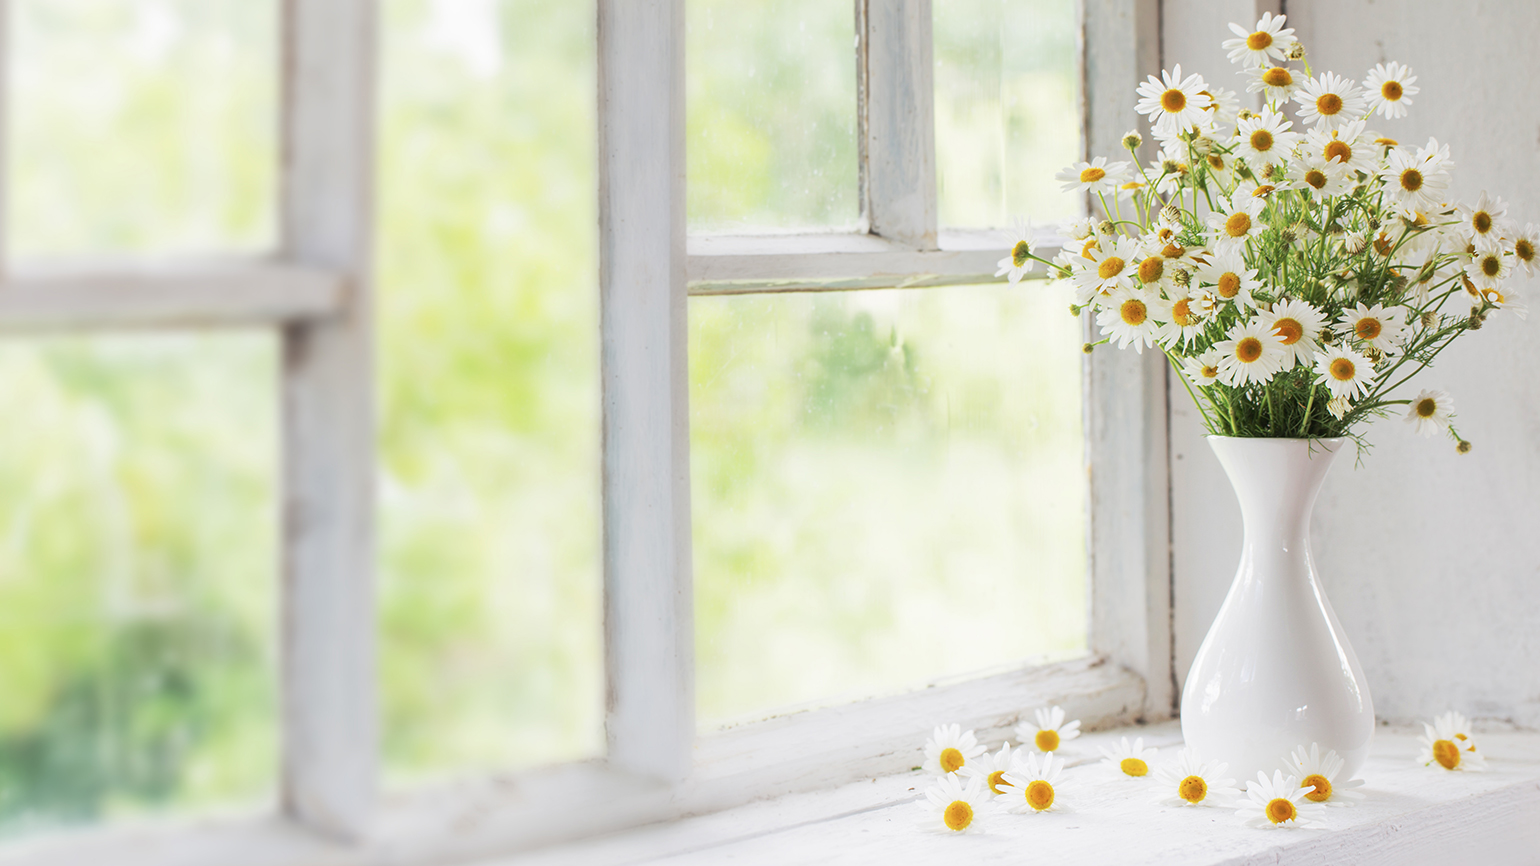 A vase of spring flowers rests near a window